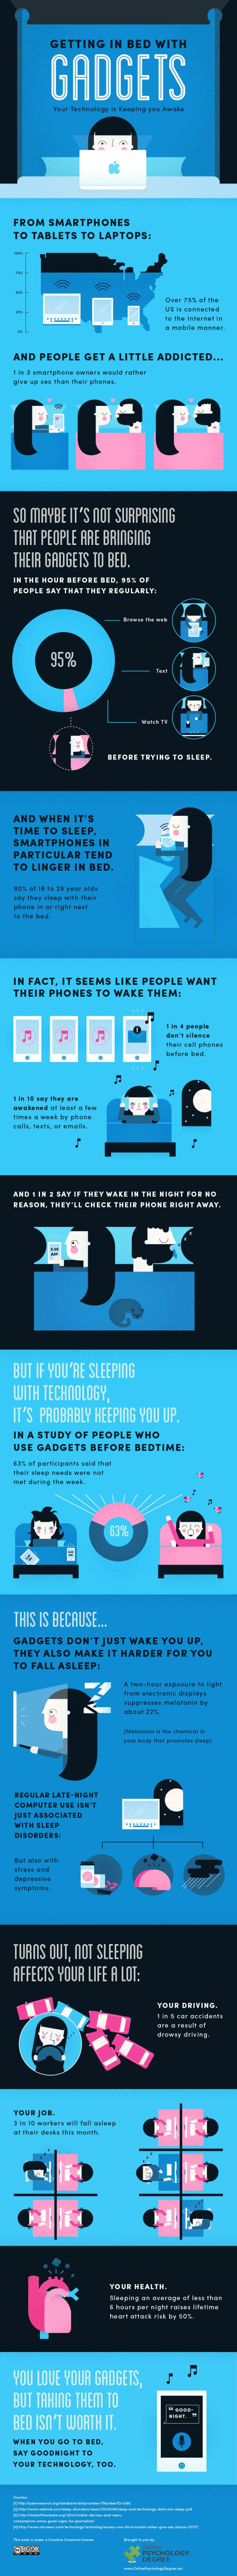 sleeping-next-to-gadgets-infographic